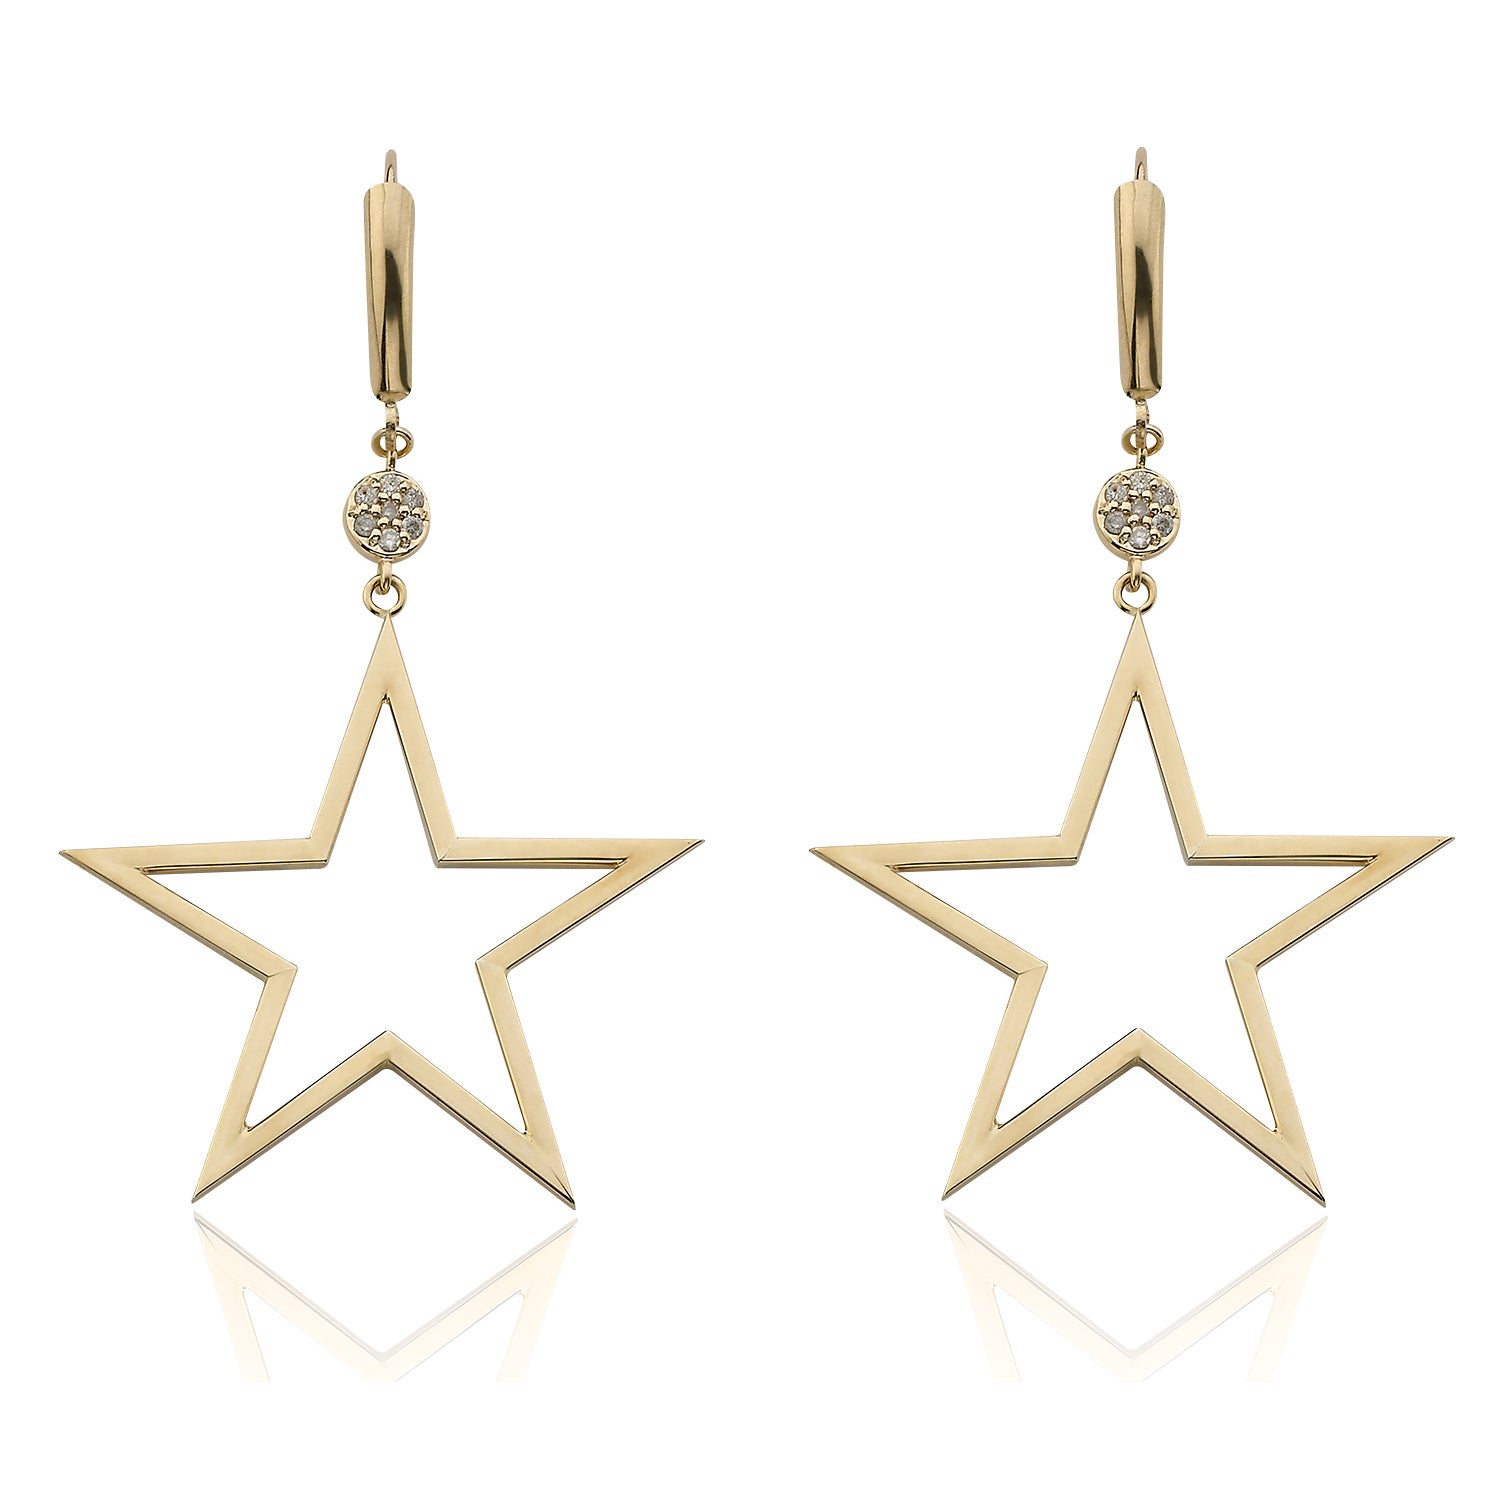 scott star carinne gray earrings kendra rose crystal lg default jewelry categories in shaped drop gold illusion